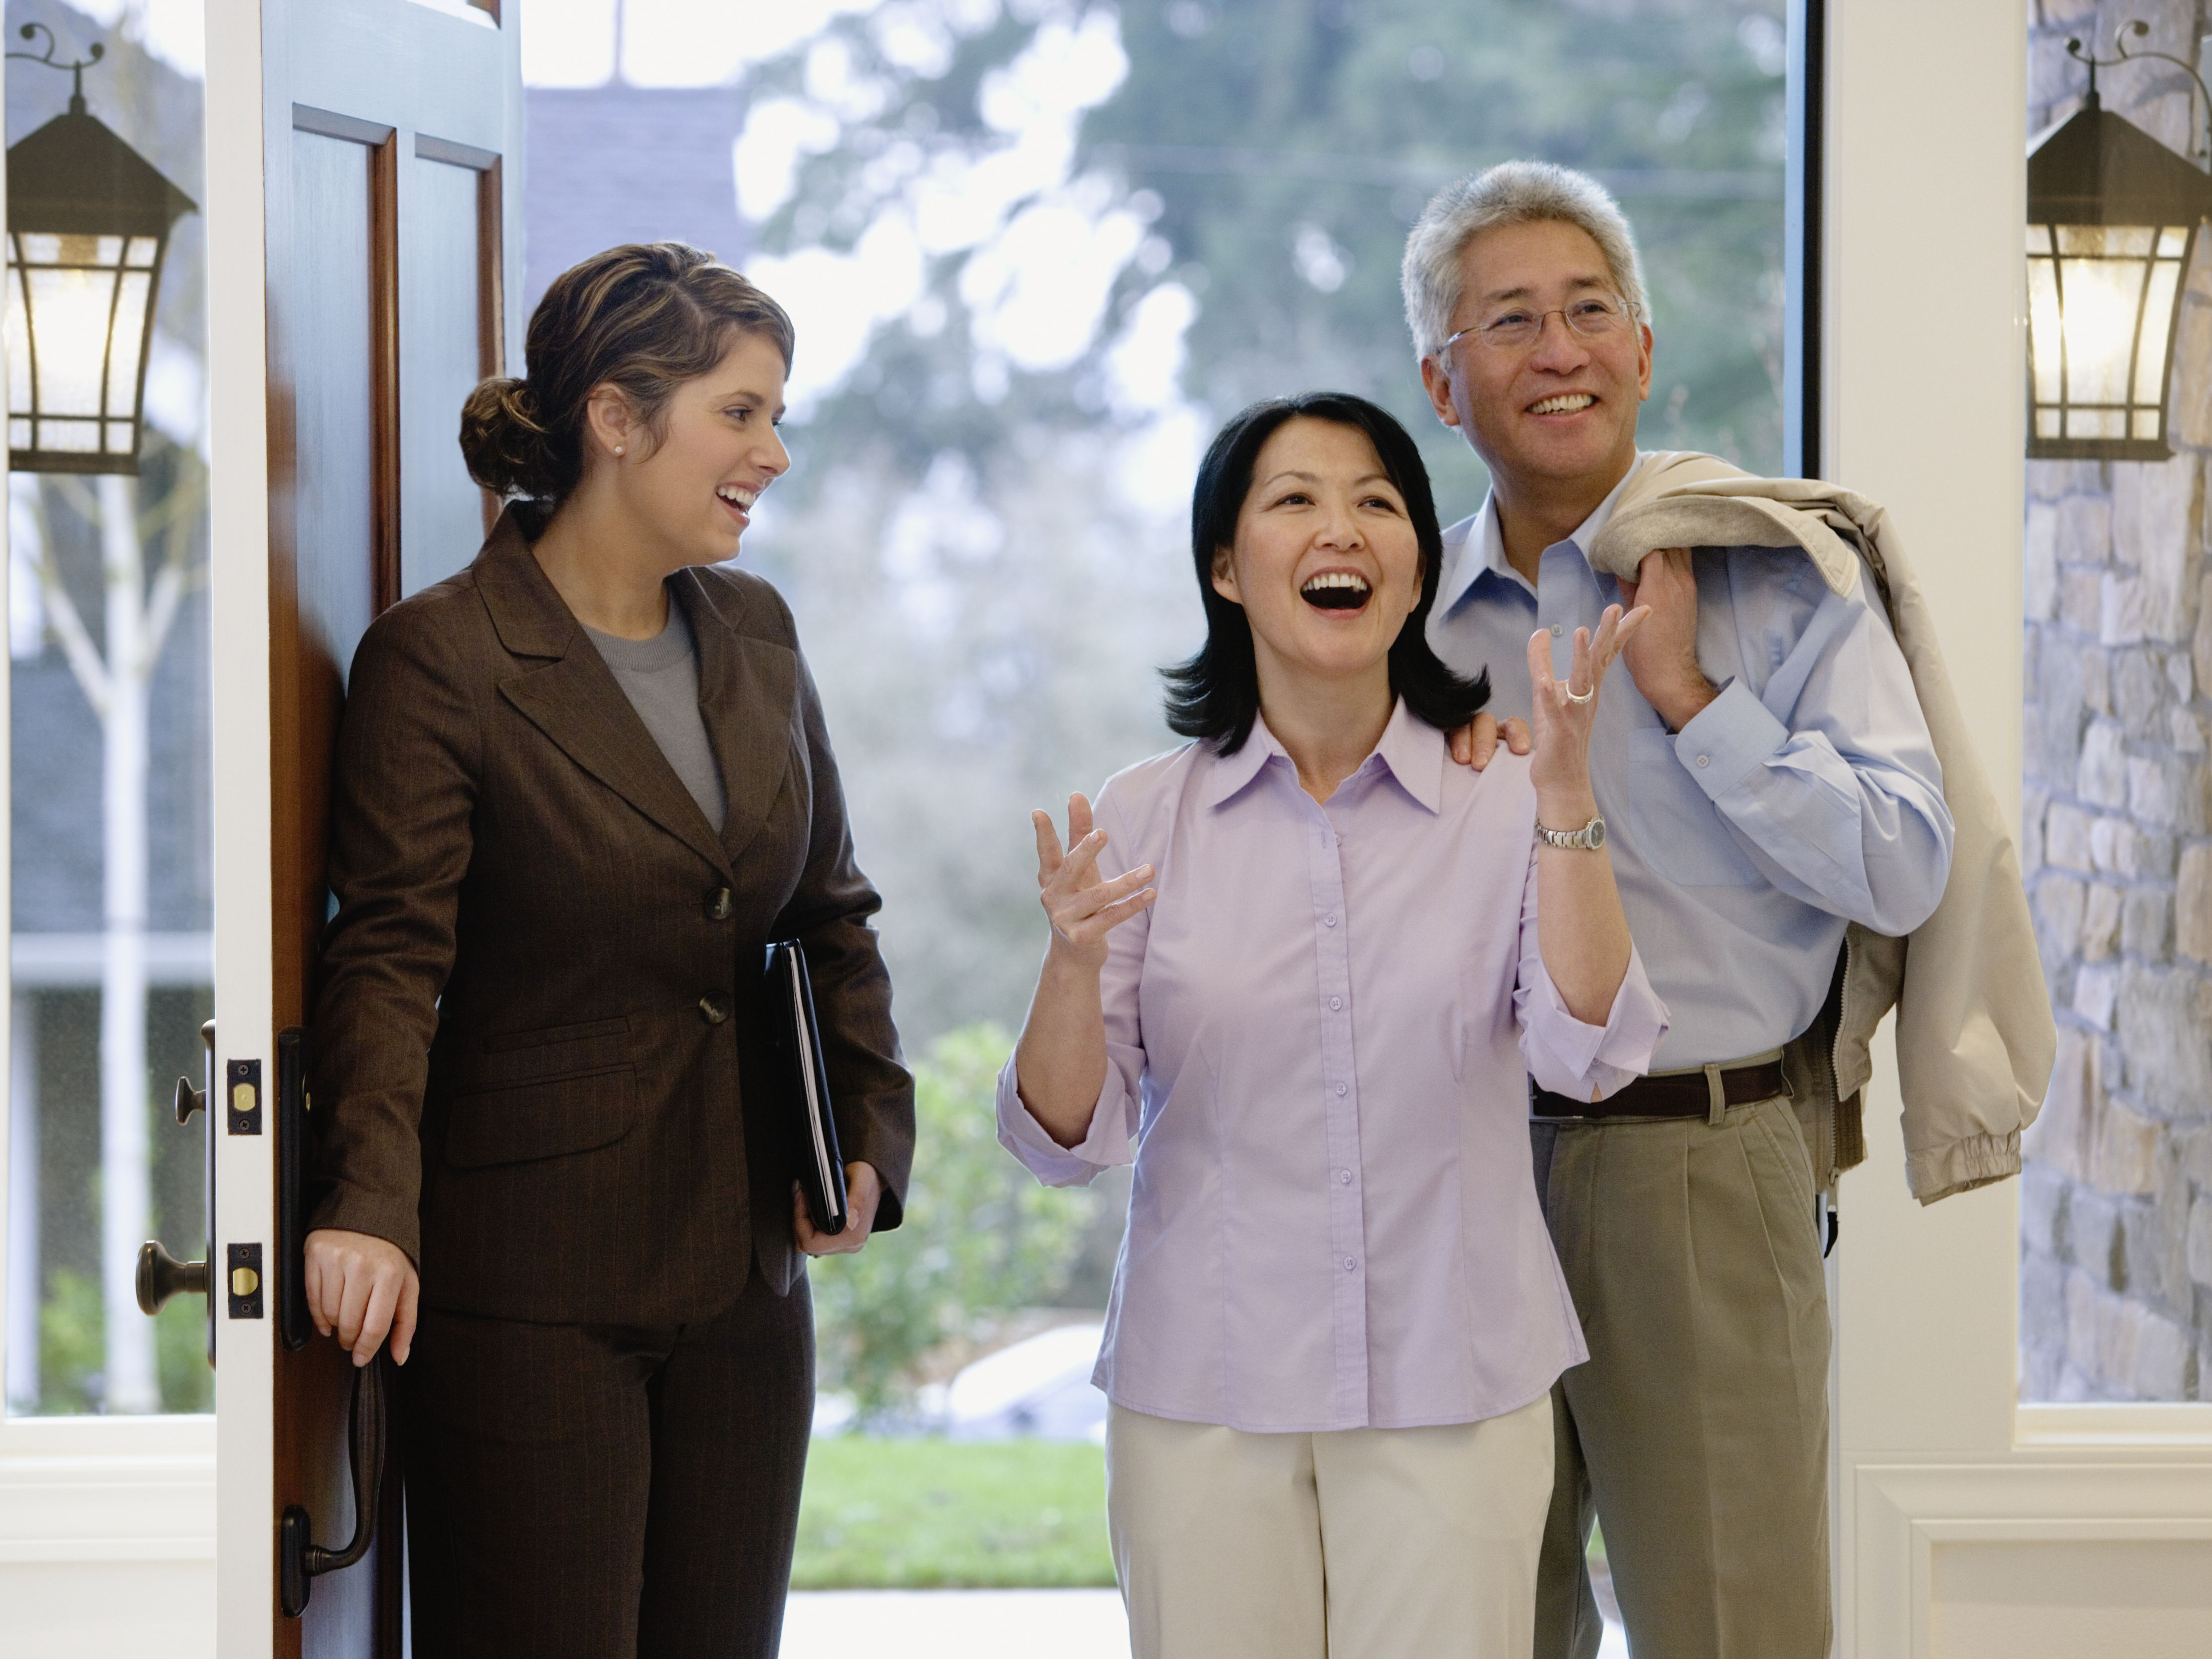 The Benefits of an Experienced Real Estate Agent